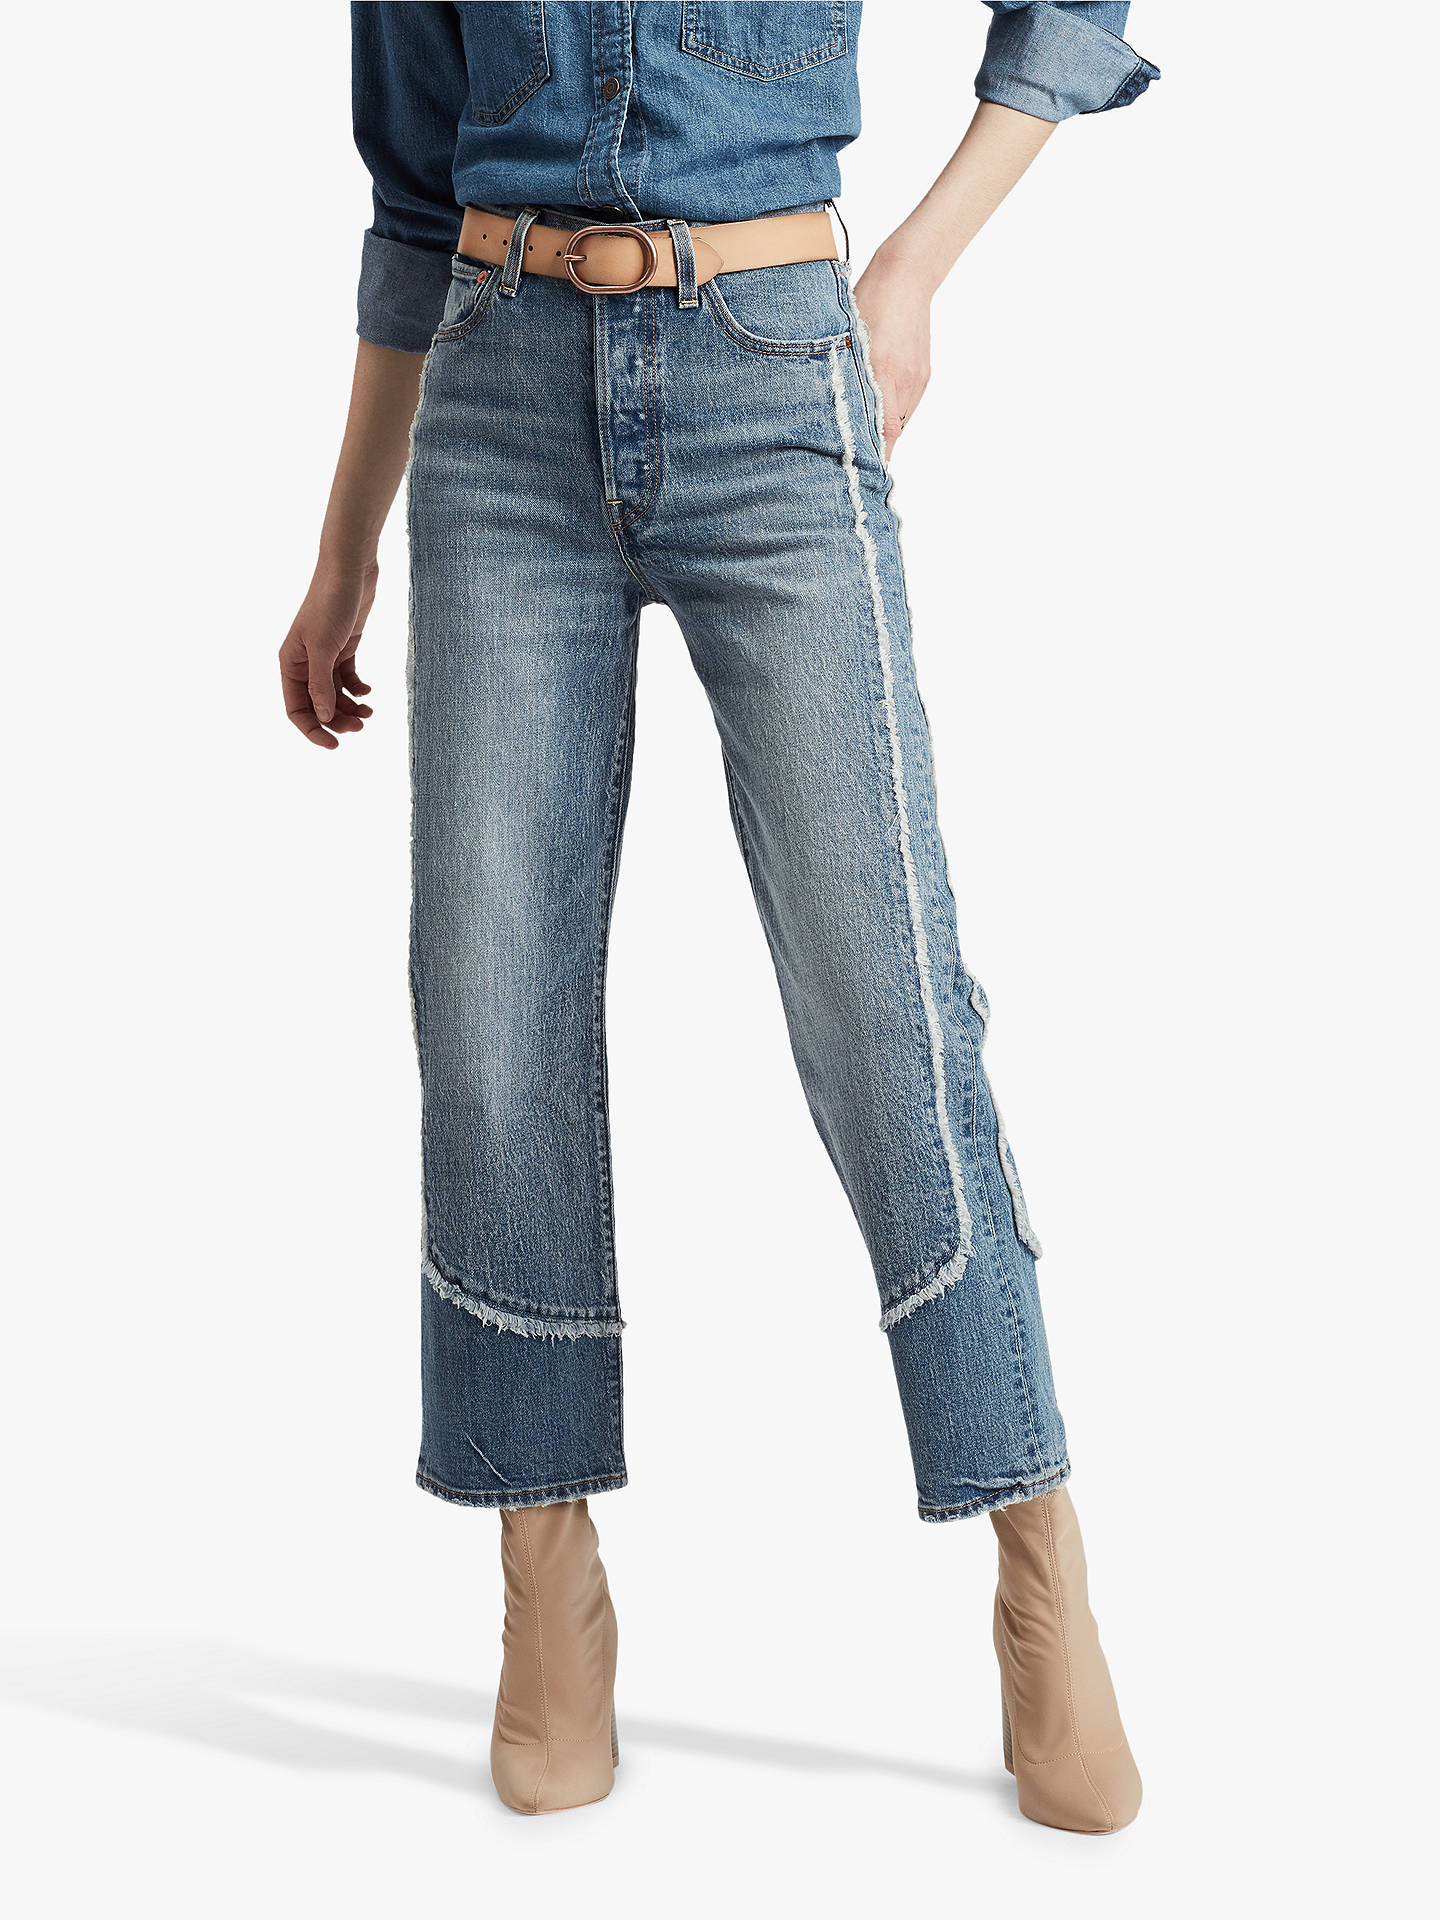 Buy Levi's Ribcage Straight Ankle Jeans, On The Fringe, W27/L27 Online at johnlewis.com